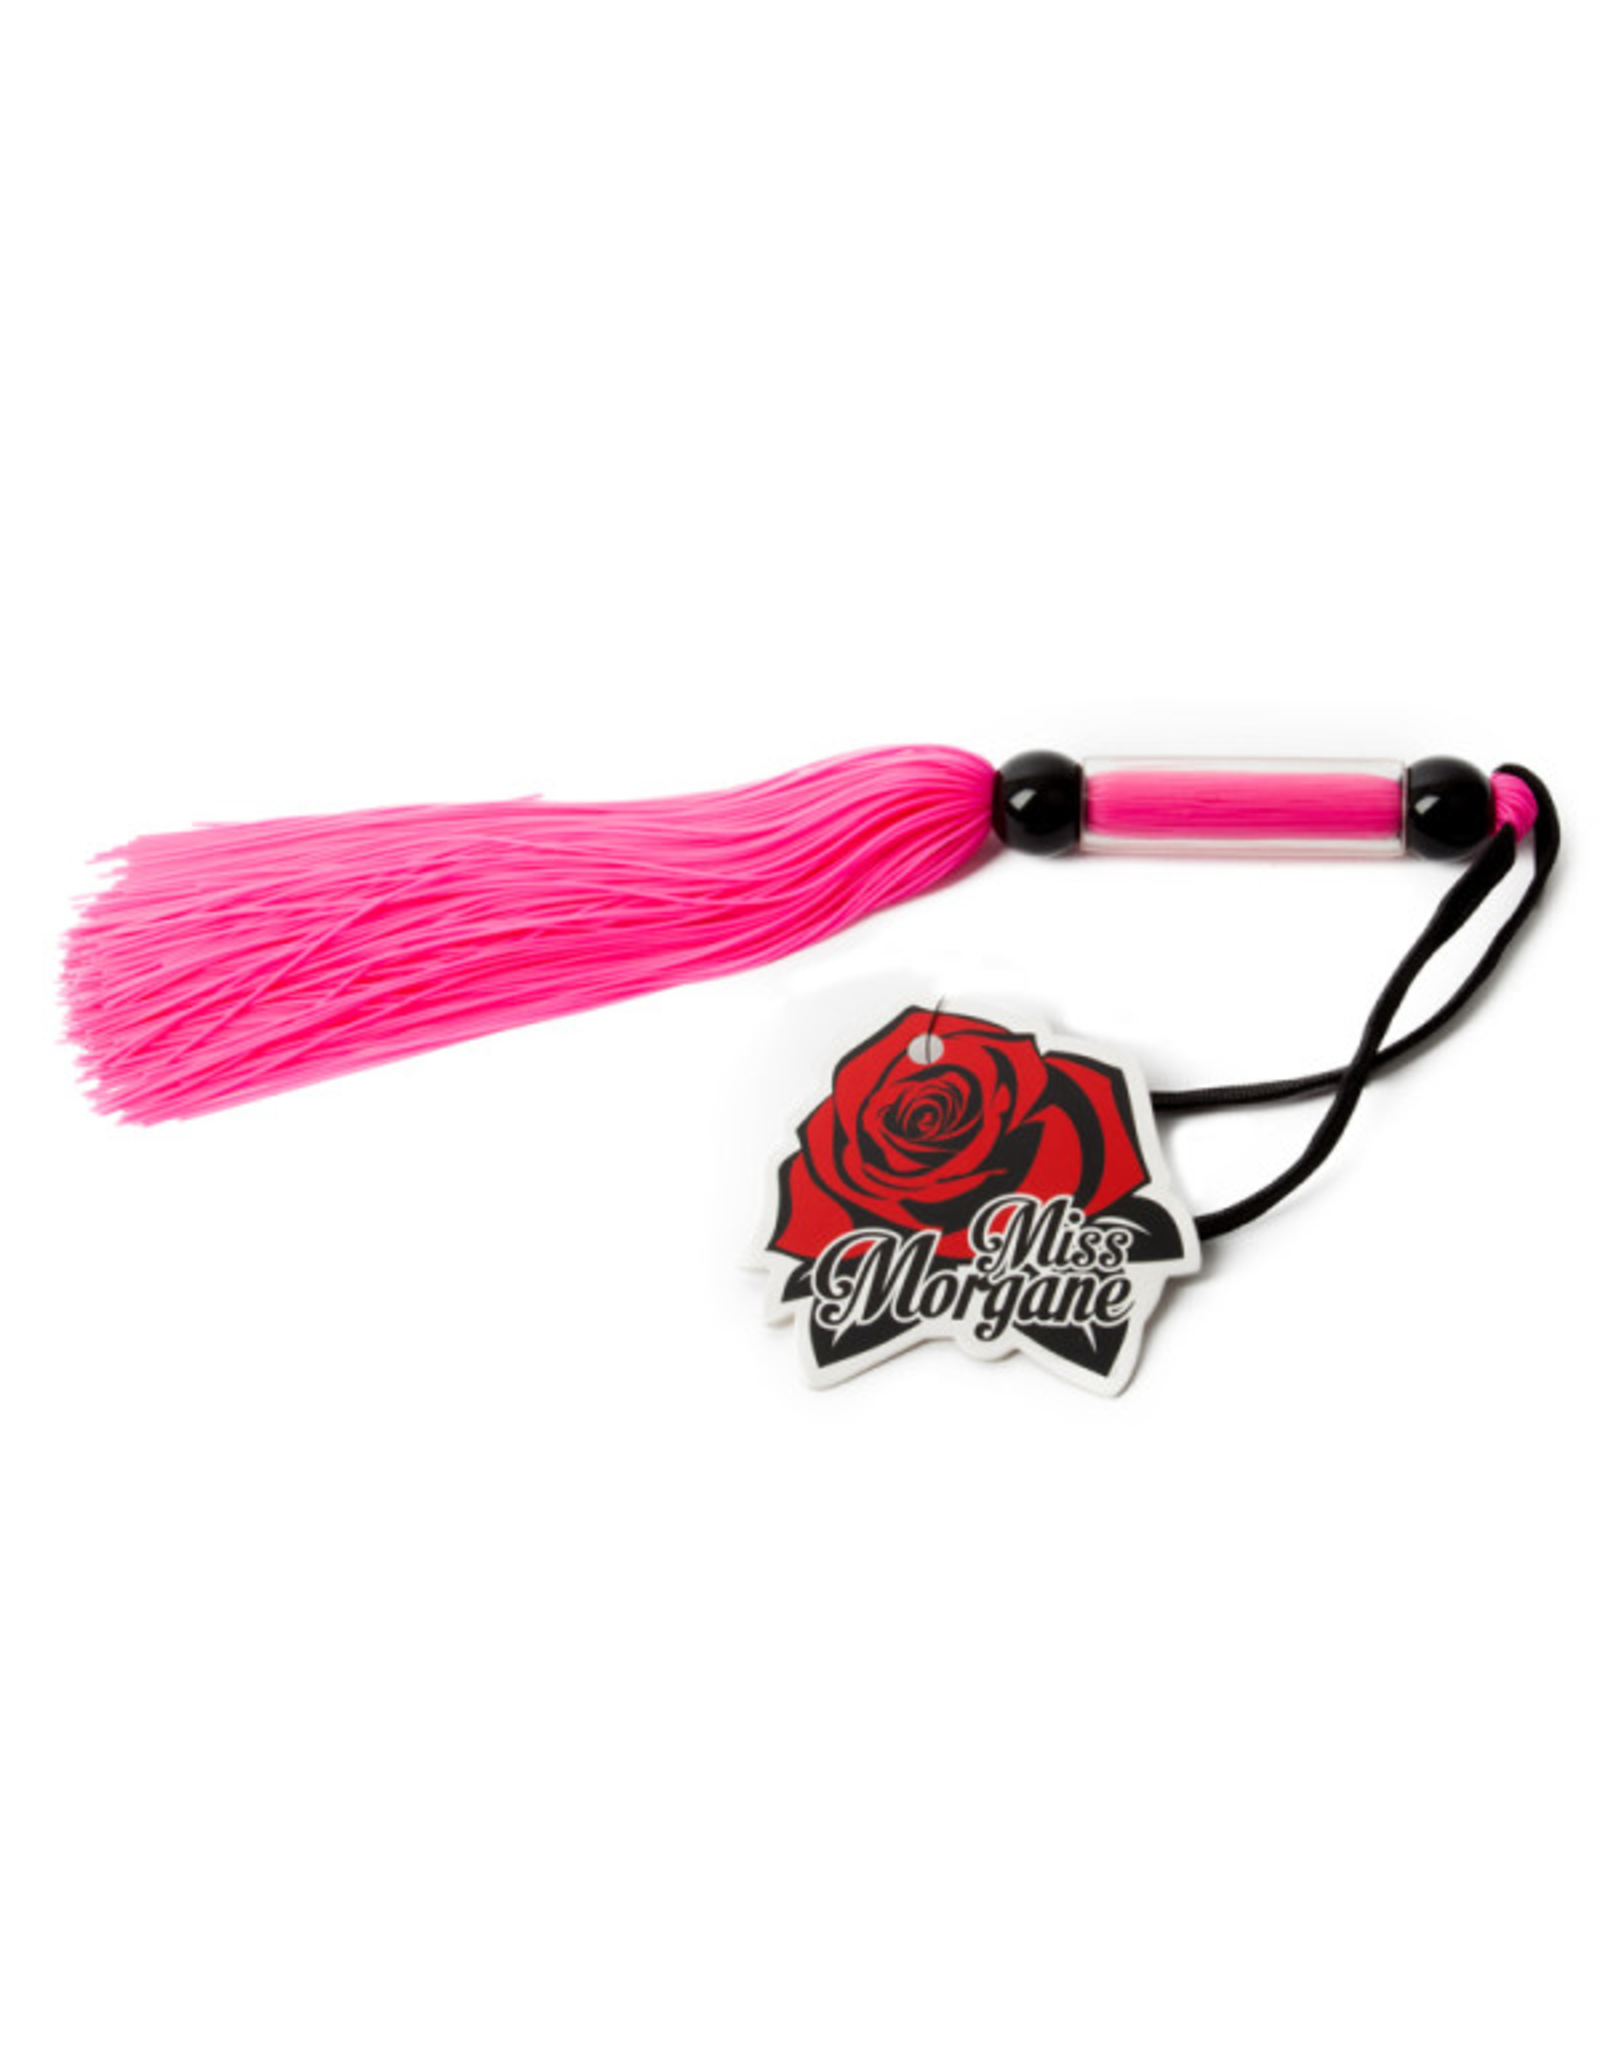 "MISS MORGANE - 10"" RUBBER WHIP - PINK"